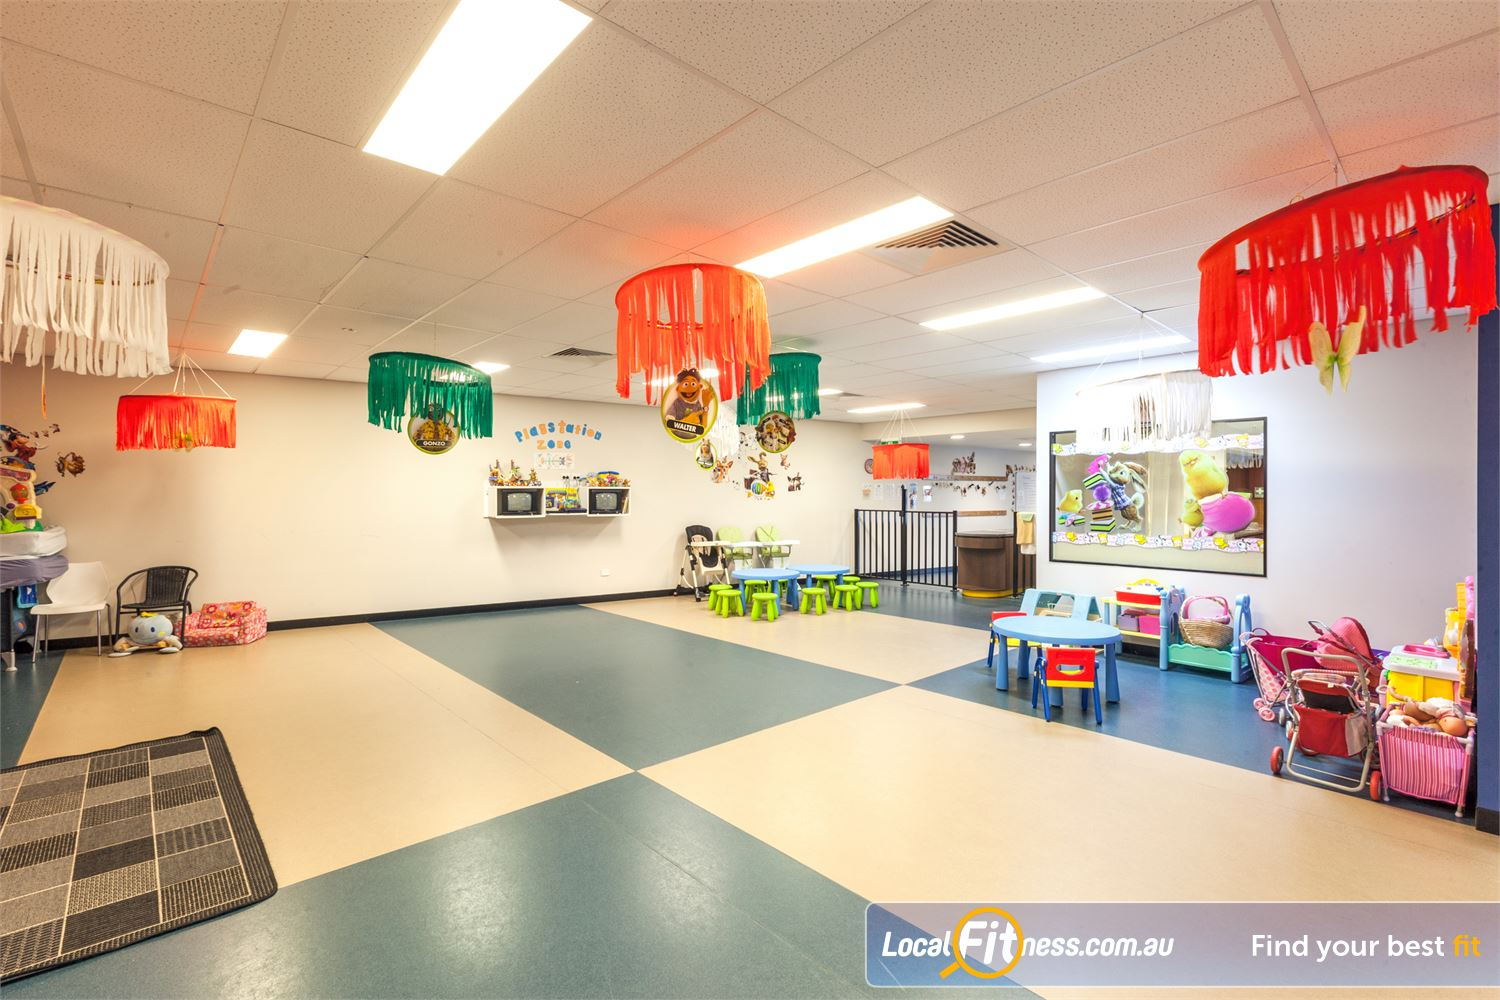 Goodlife Health Clubs Caloundra Goodlife Caloundra provides on-site child minding services.